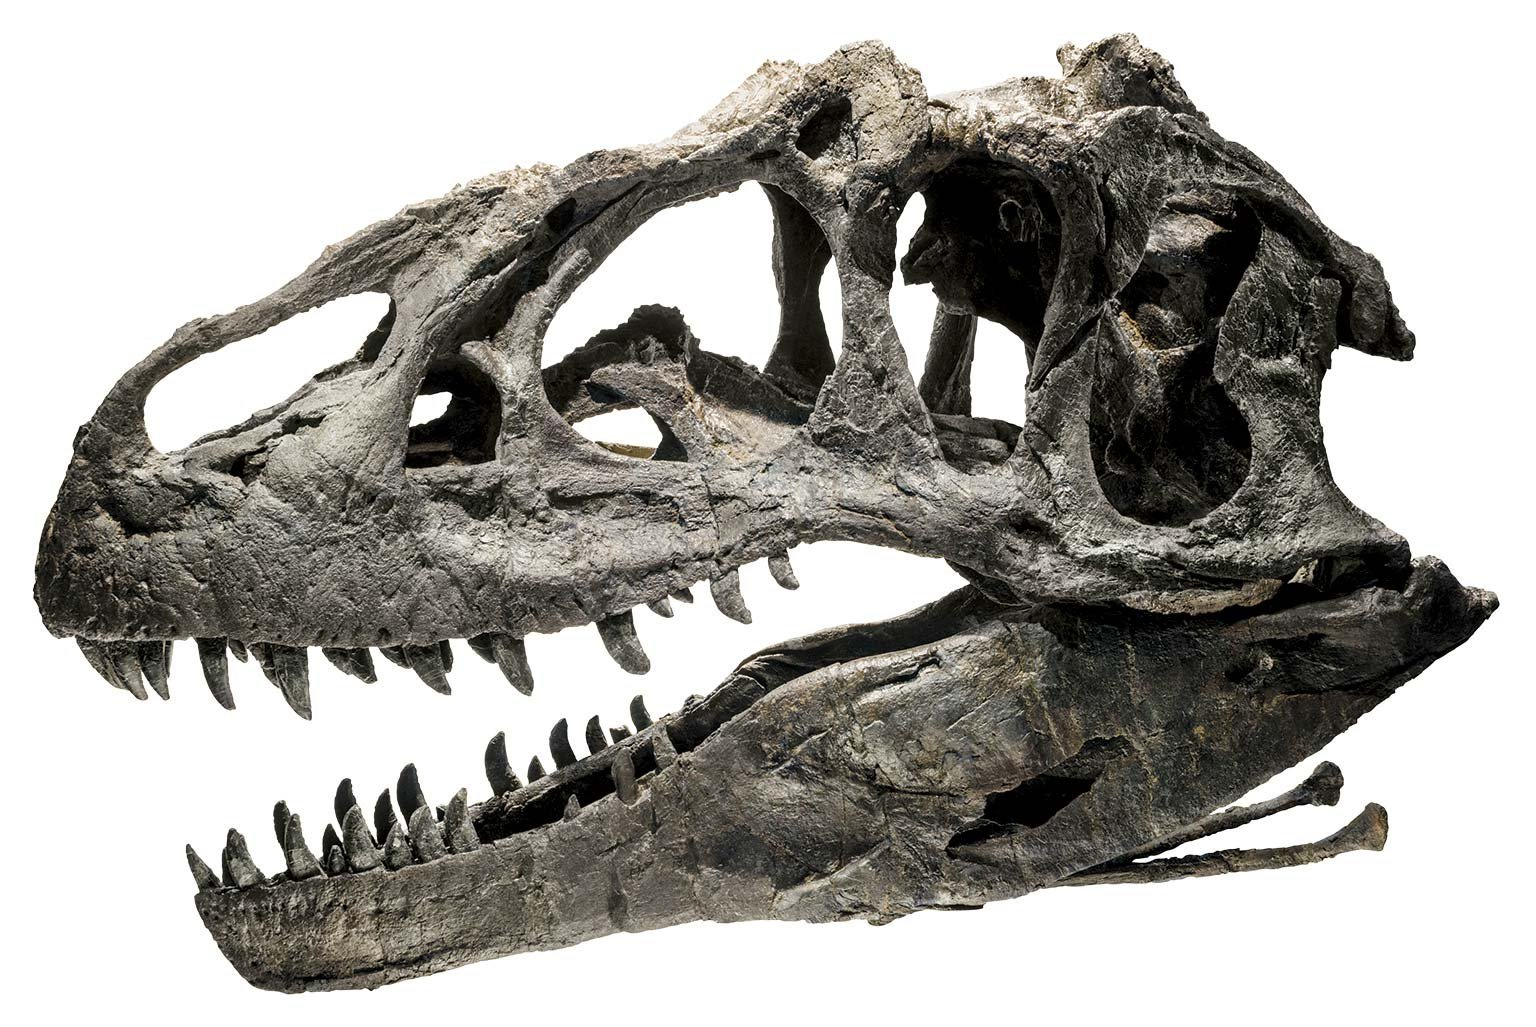 Allosaurus A Creationist S Best Friend Answers In Genesis